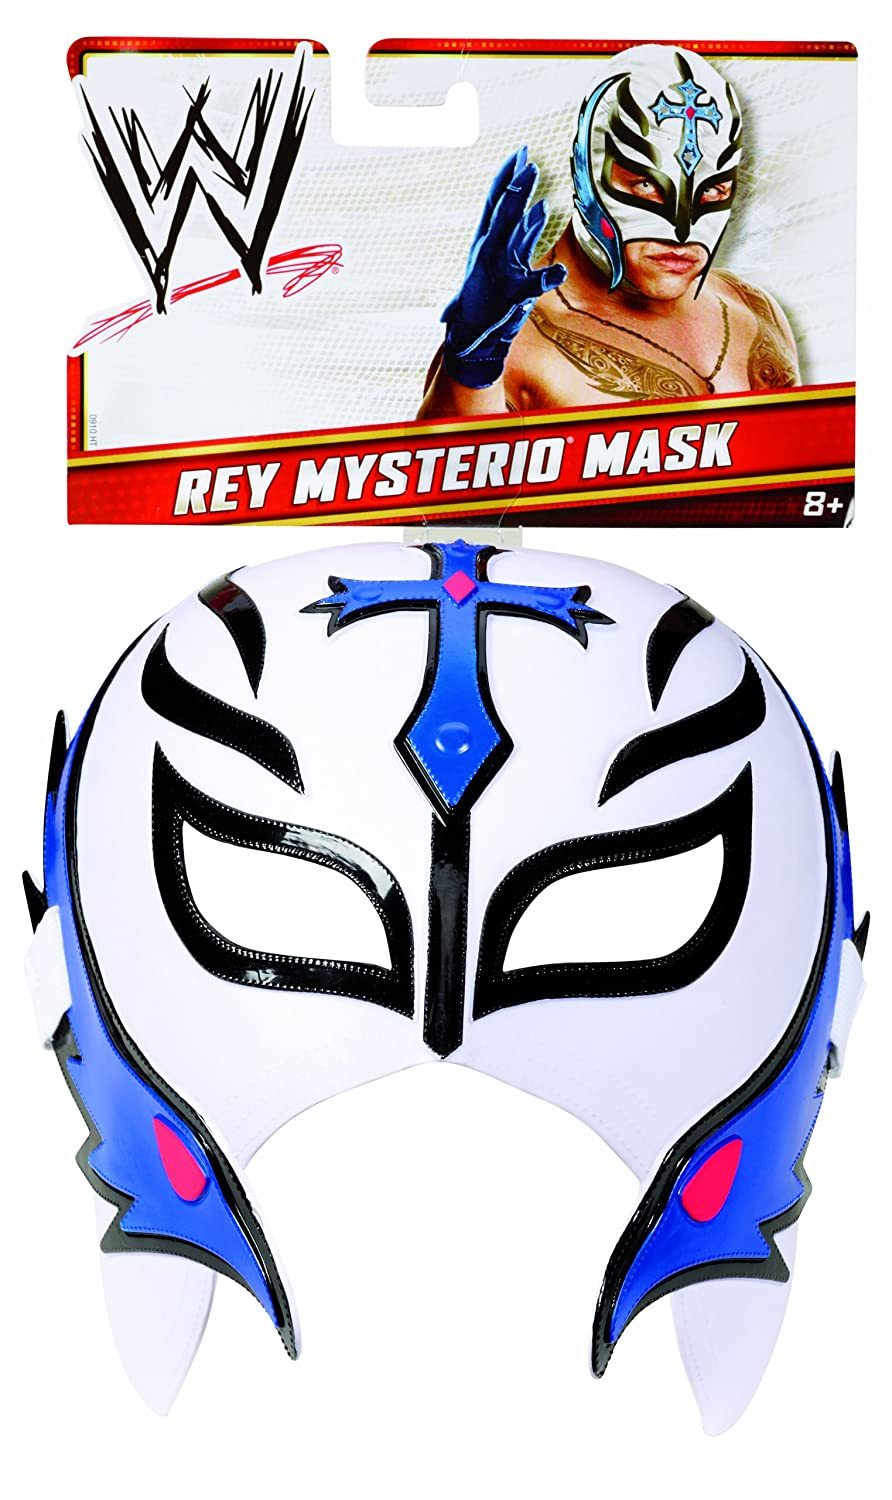 Wwe coloring pages of rey mysterio mask rey mysterio coloring pages - Wwe Coloring Pages Of Rey Mysterio Mask Rey Mysterio Coloring Pages 16